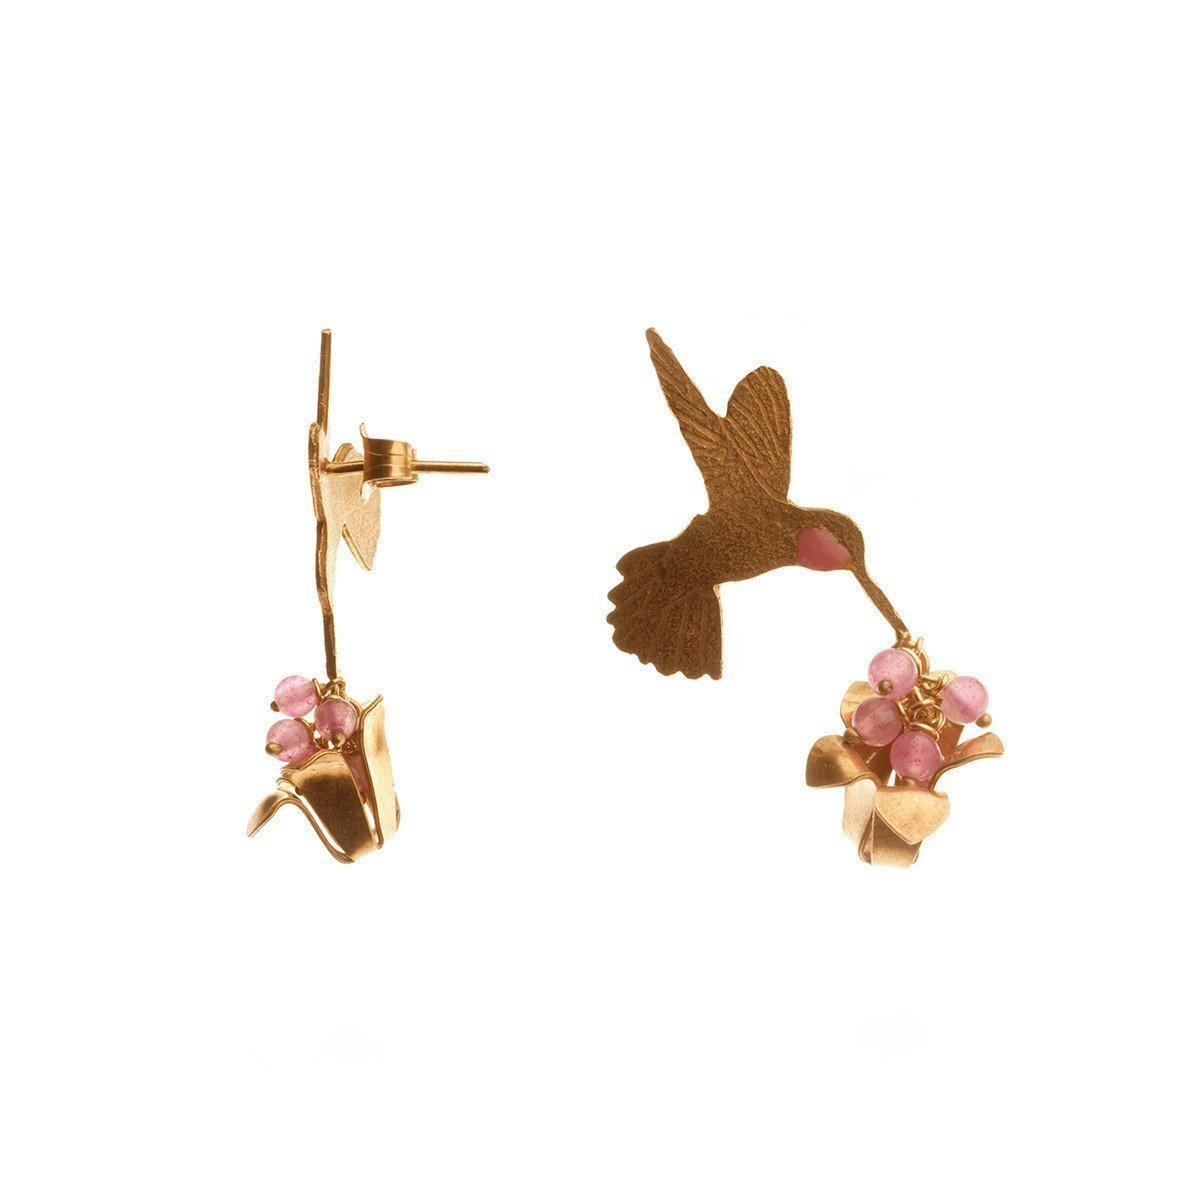 Gold Plated Humming Bird and Flower Earrings-Earrings-Amanda Coleman-JewelStreet